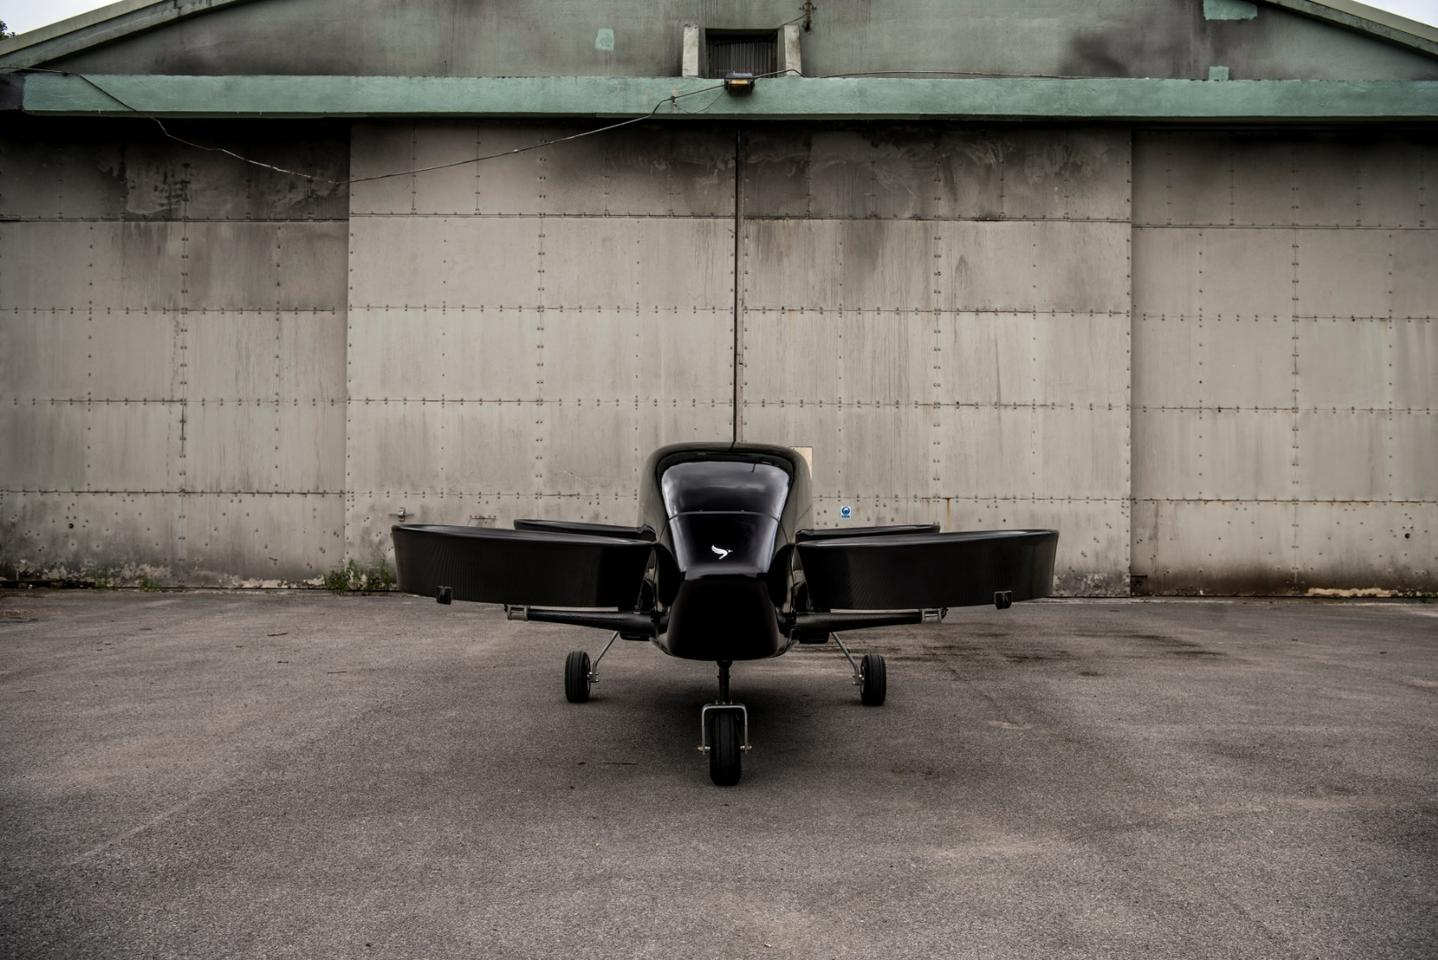 Vertical Aerospace plans to have the first eVTOL aircraft providing an intercity air taxi service within the next four years